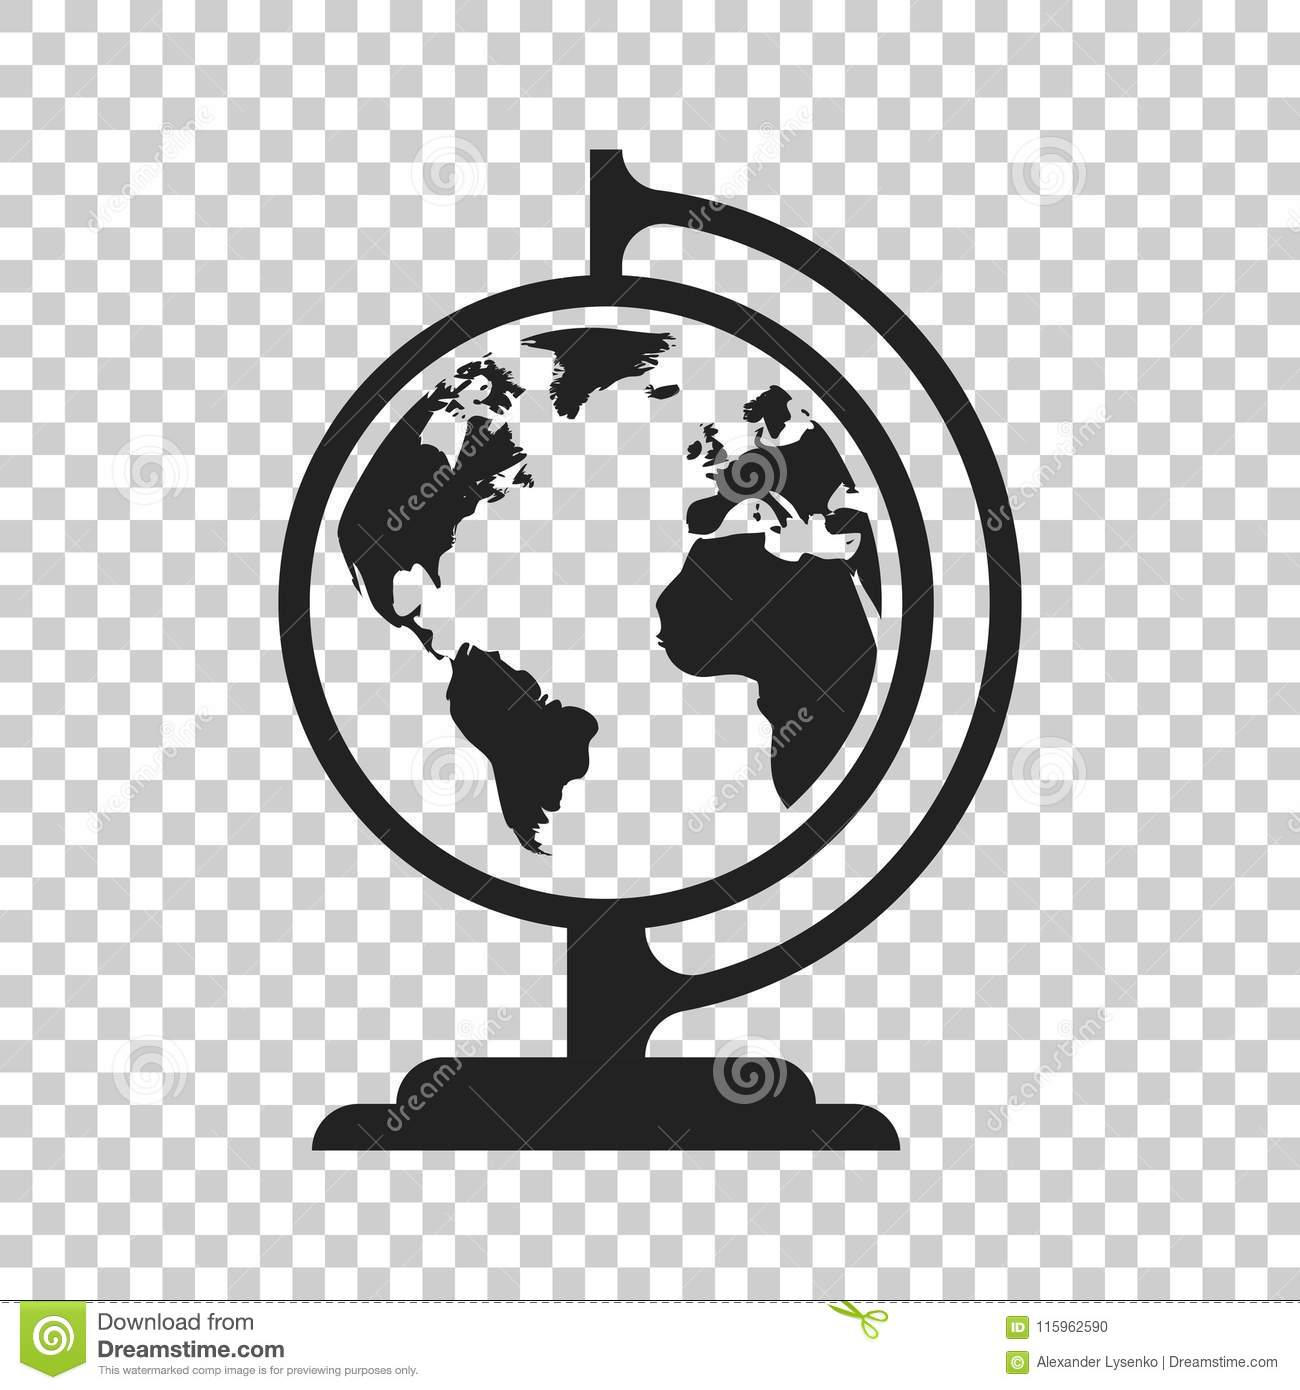 Flat World Map Vector.Globe World Map Vector Icon Round Earth Flat Vector Illustration